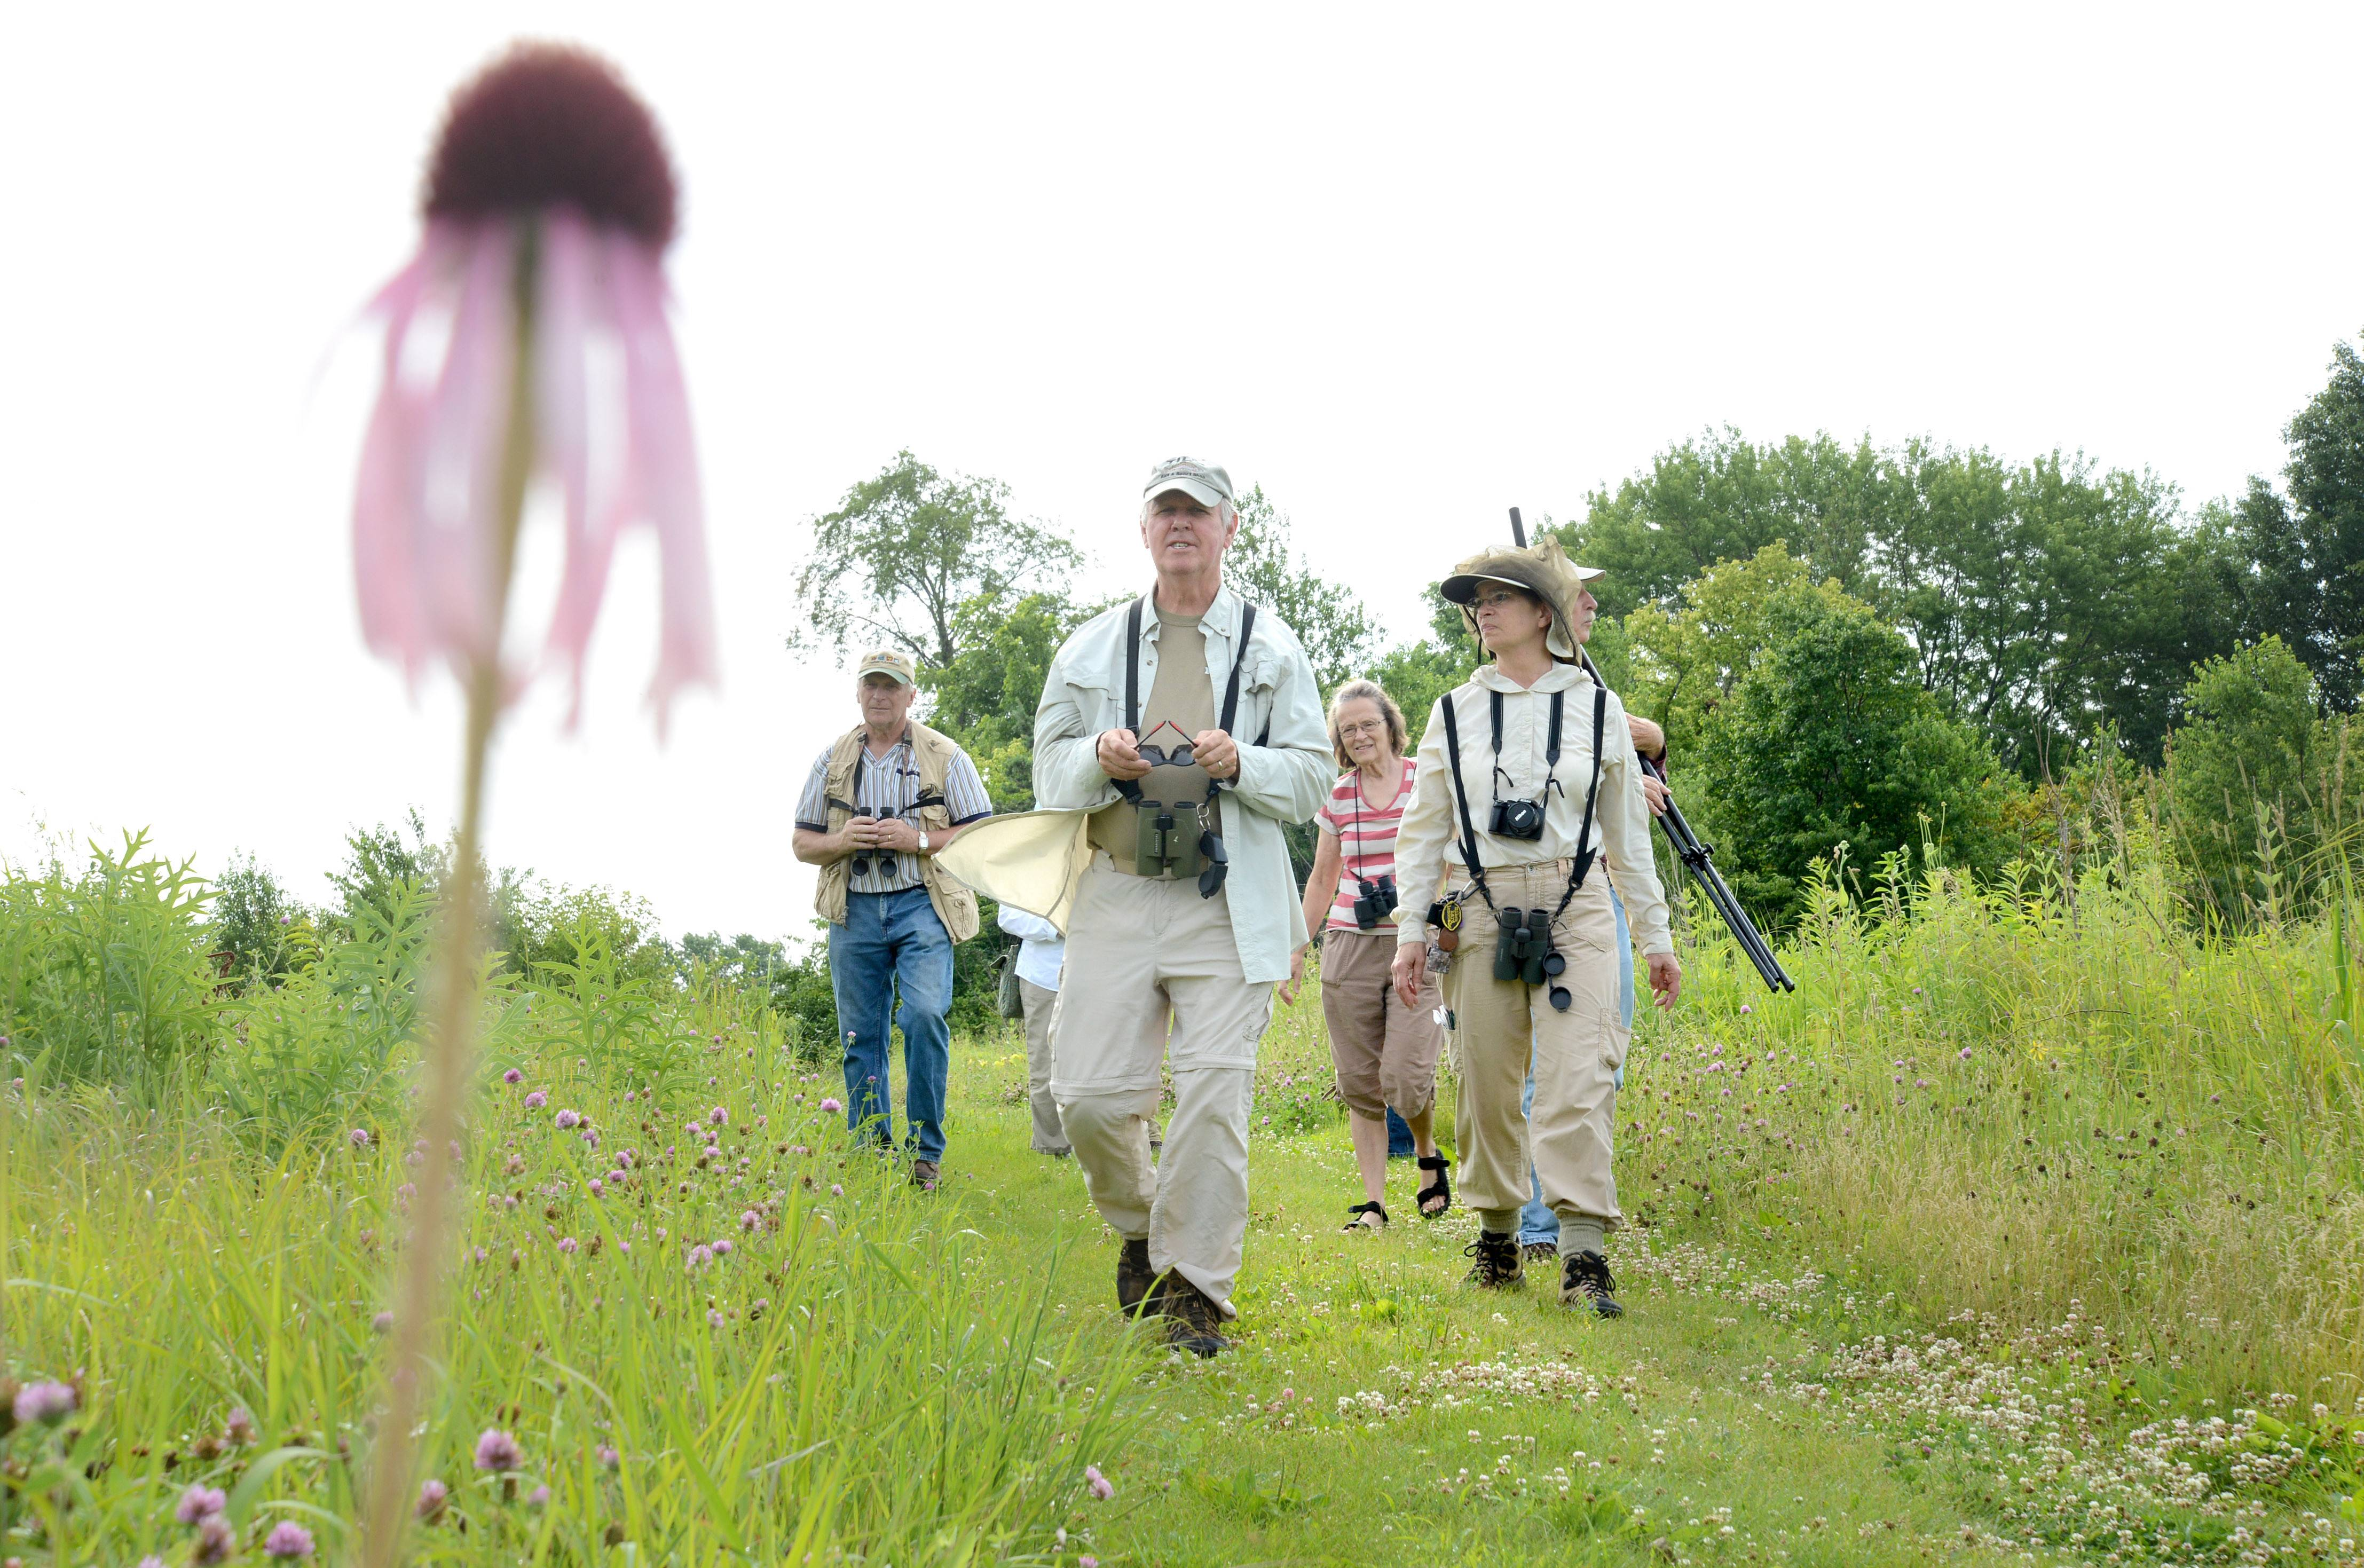 Kane County Audubon Society President Bob Andrini of St. Charles, left, and Terry Murray of Aurora lead a group bird watchers at Dick Young Forest Preserve in Batavia on Saturday. Nine birders braved the mosquitoes to hike around the lake on the pleasant summer morning.